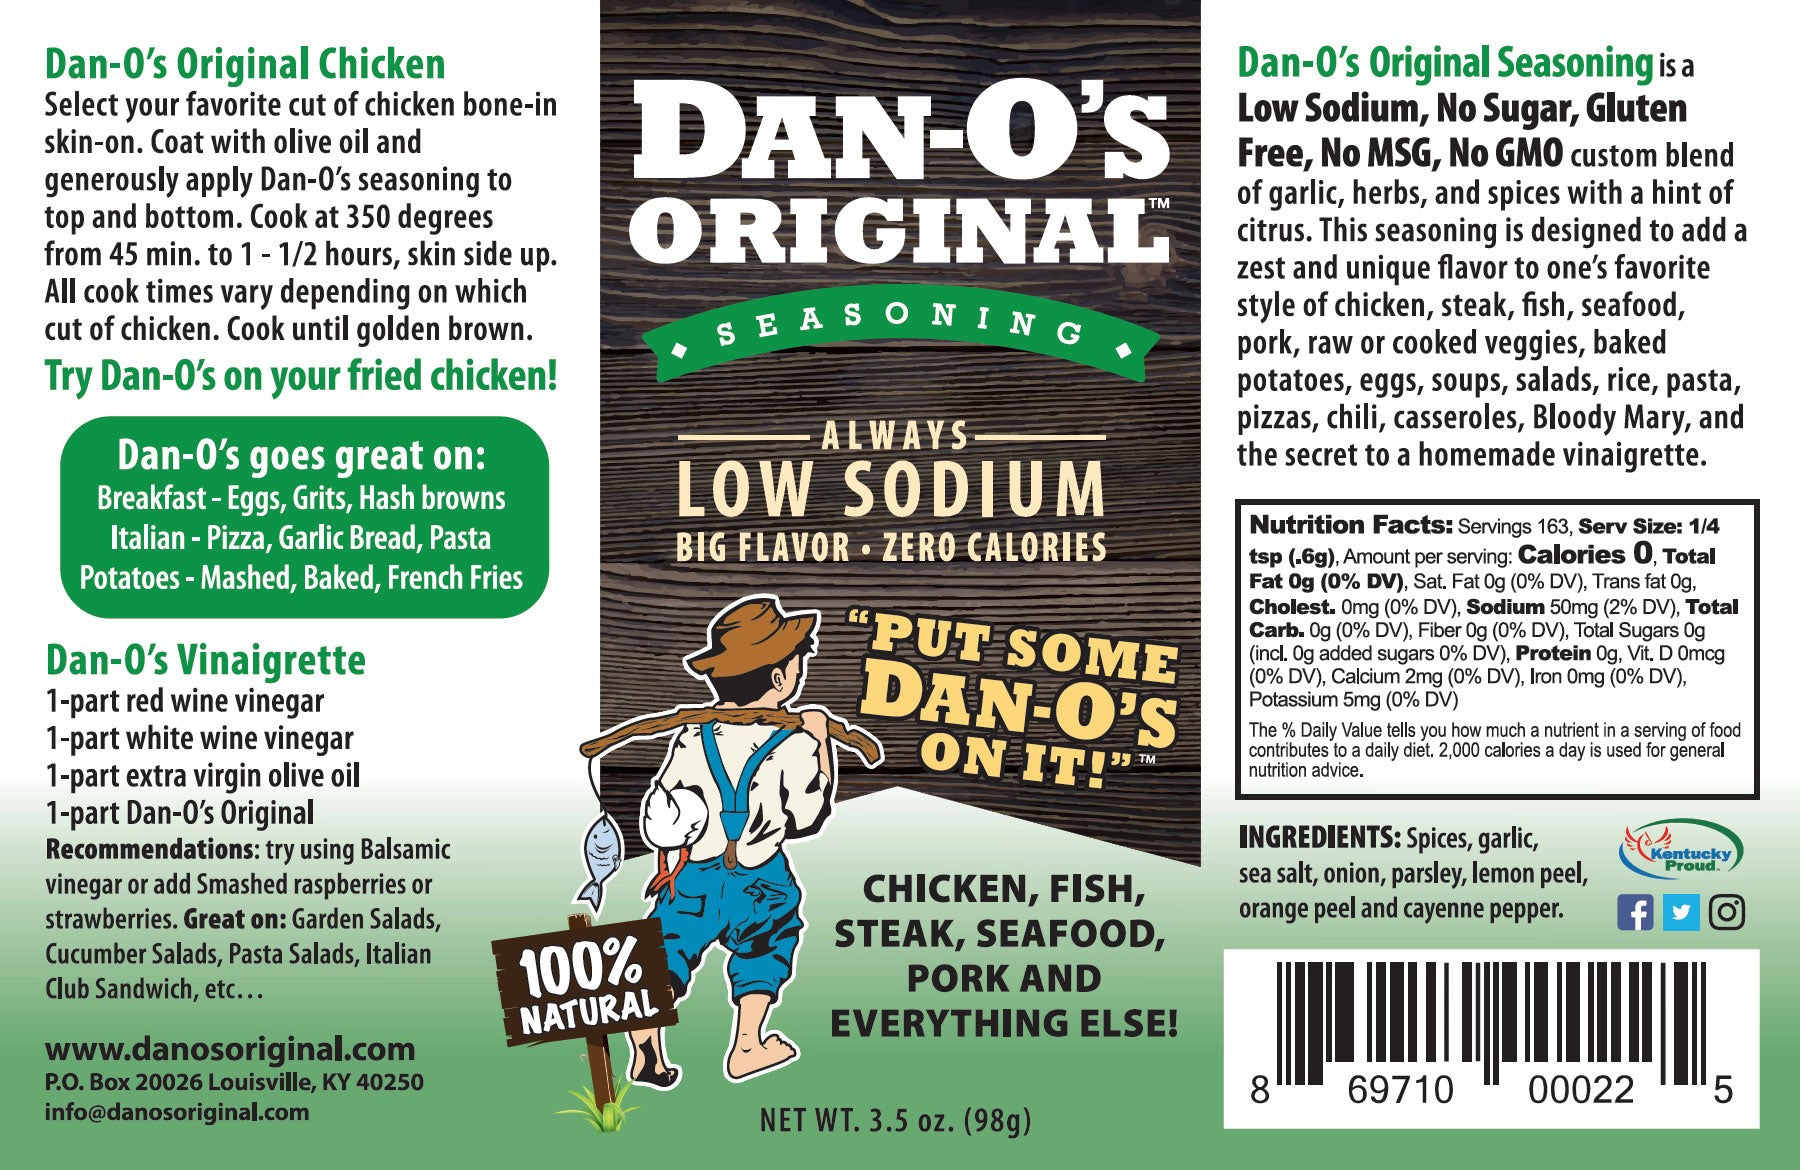 Dan-O's Original Seasoning (20 o.z.) - Dan-O's Orginal Seasoning